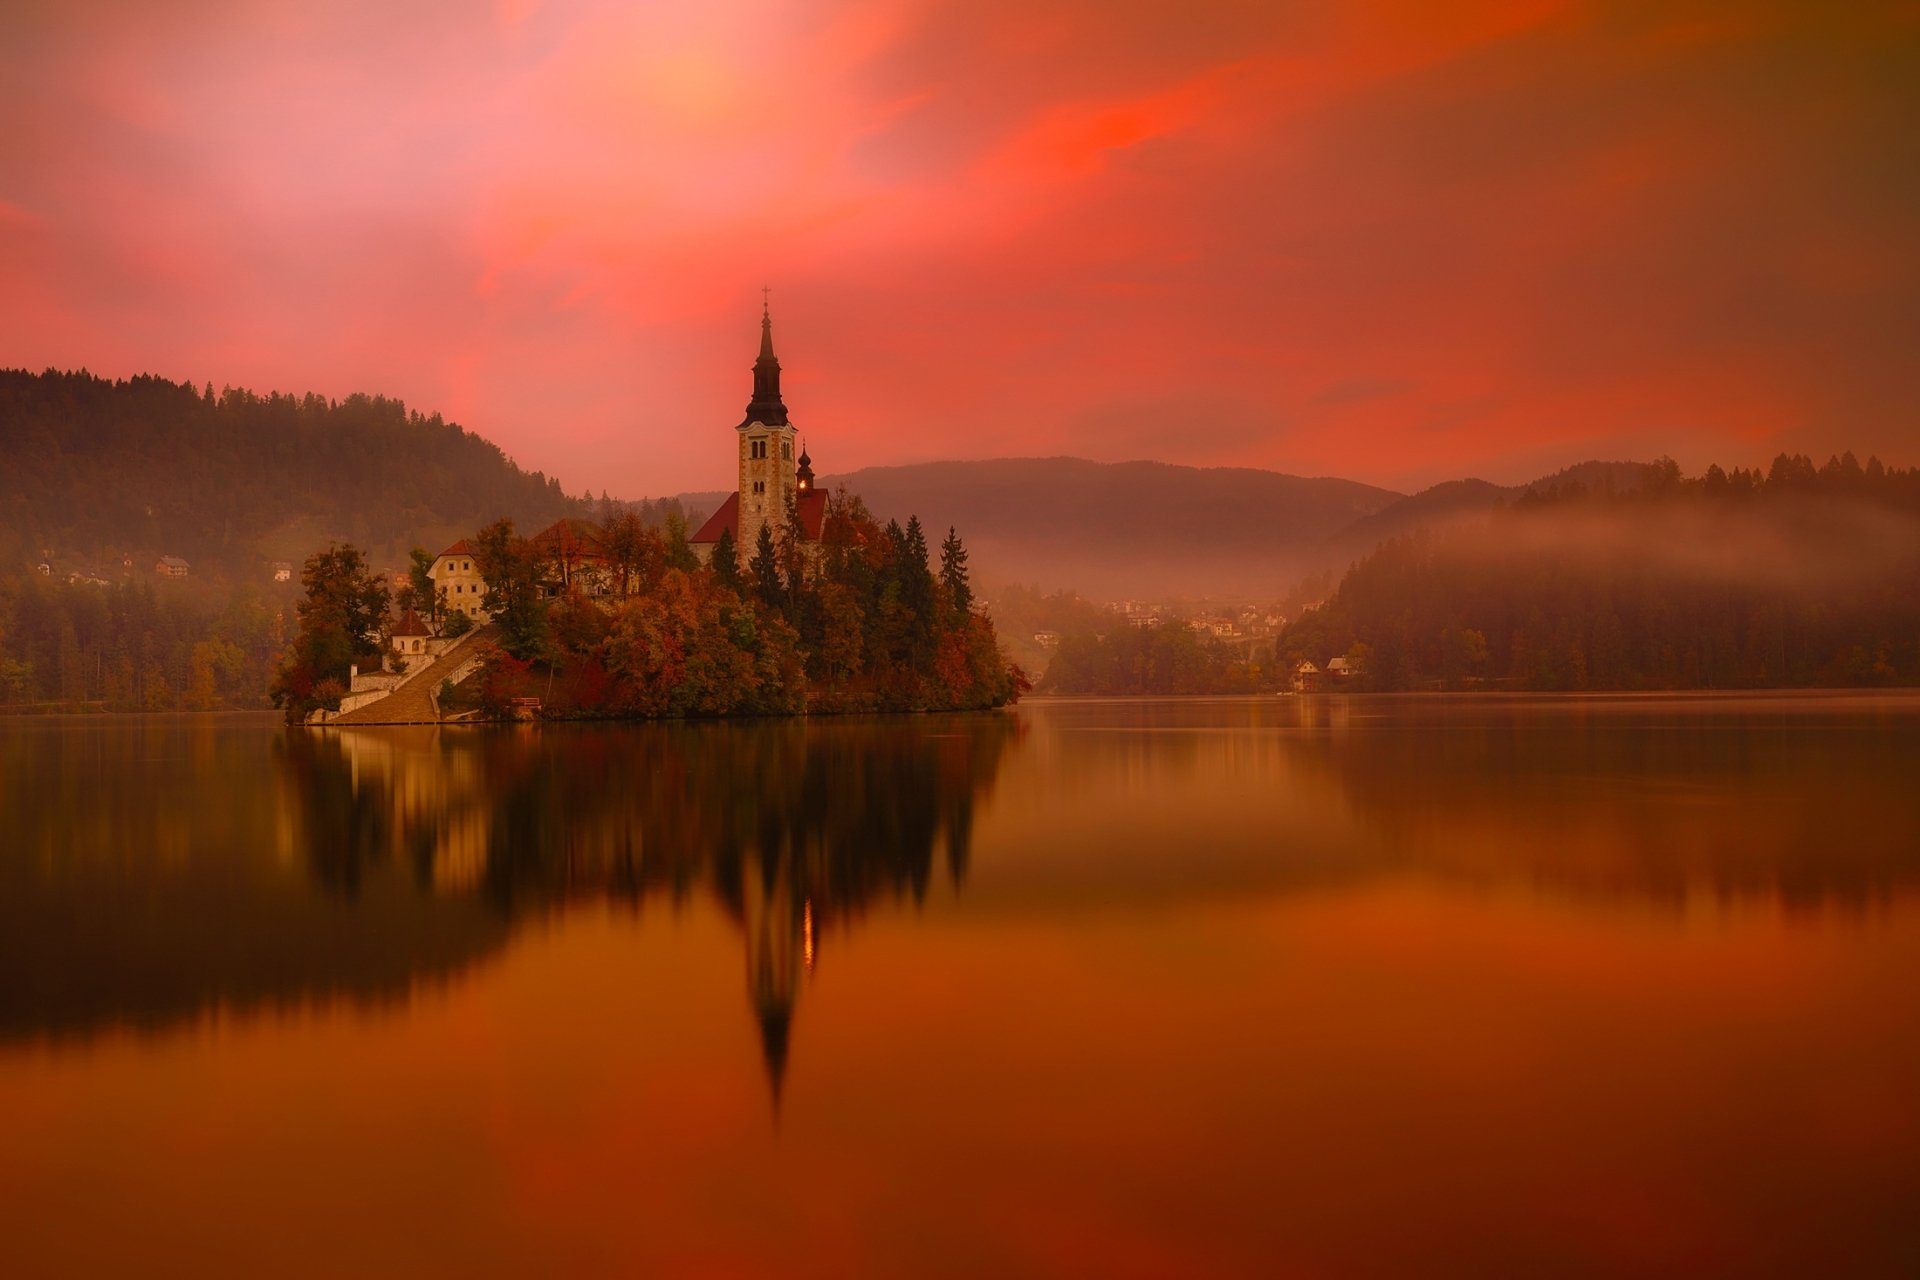 Religious - Assumption of Mary Church  Lake Bled Slovenia Orange Reflection Religious Wallpaper